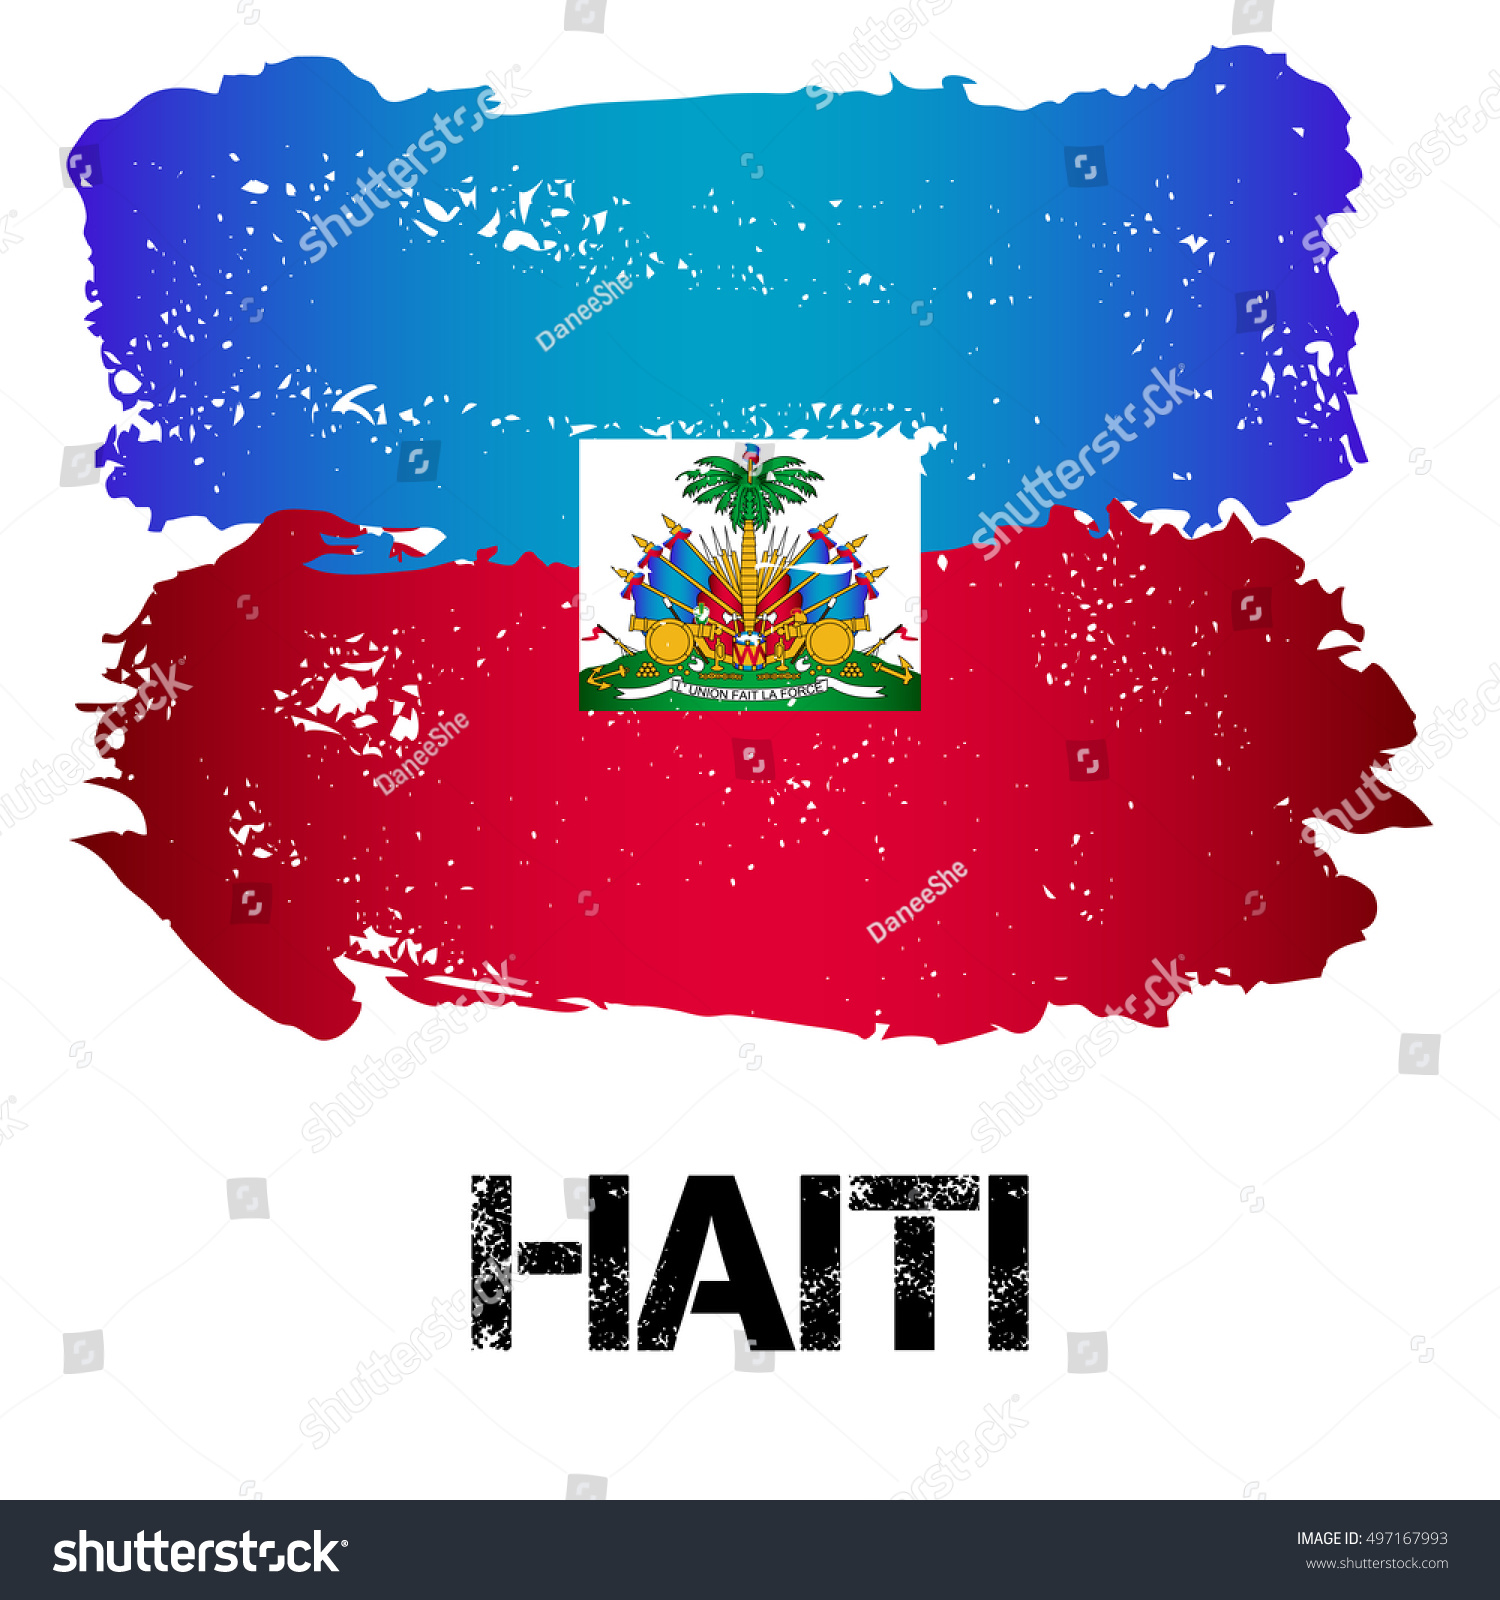 Flag Haiti Brush Strokes Grunge Style Stock Vector 497167993 ...